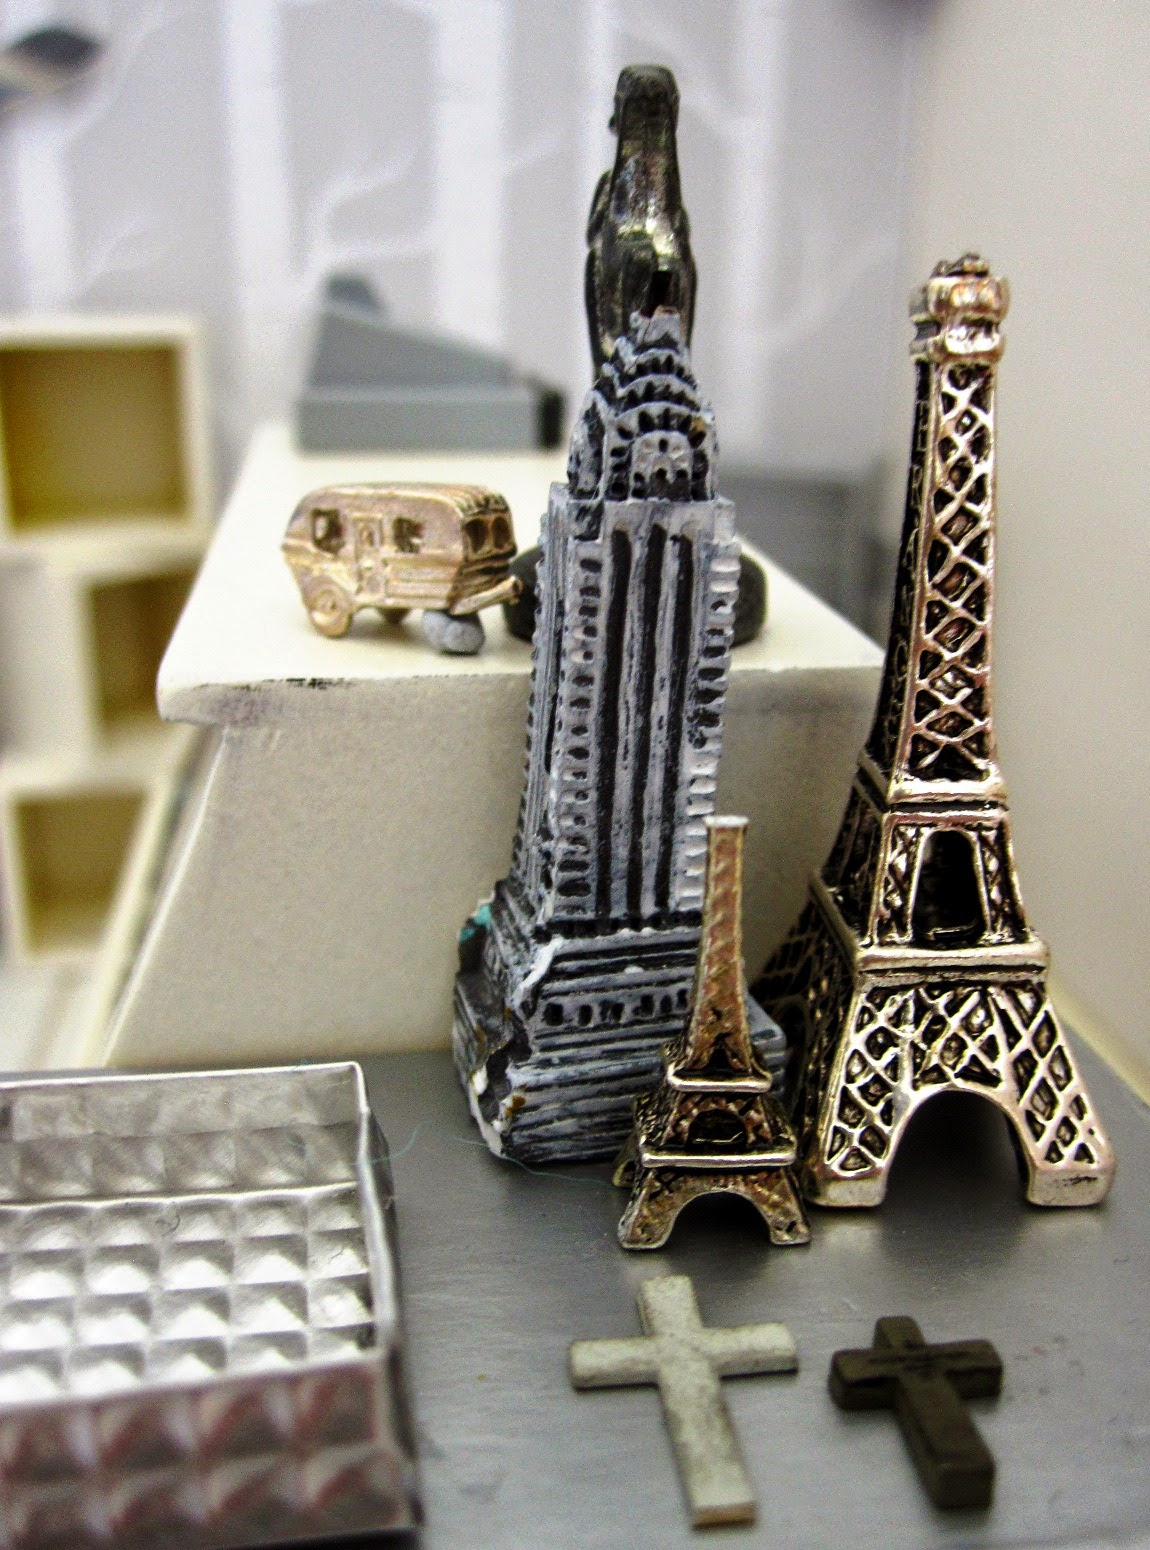 Close up of  a modern dolls' house miniature display of model buildings: an Eiffel Tower in two sizes, plus an Empire State Building. In front are two grey crosses and to the left is a grey metal tray.